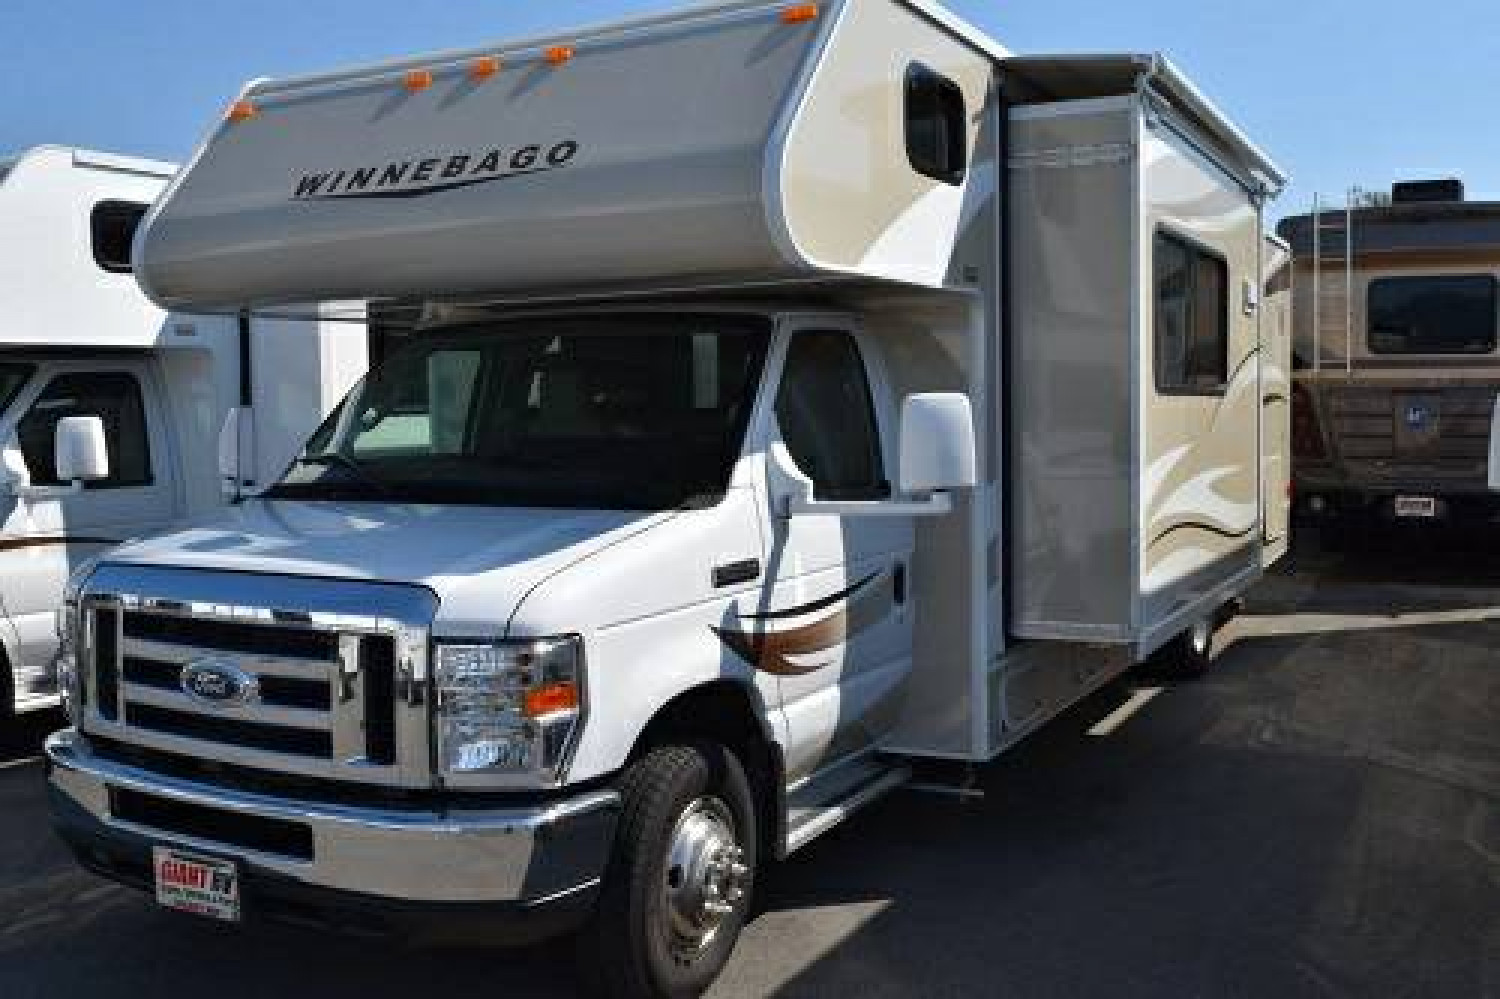 2016 31' Class C RV For Rent